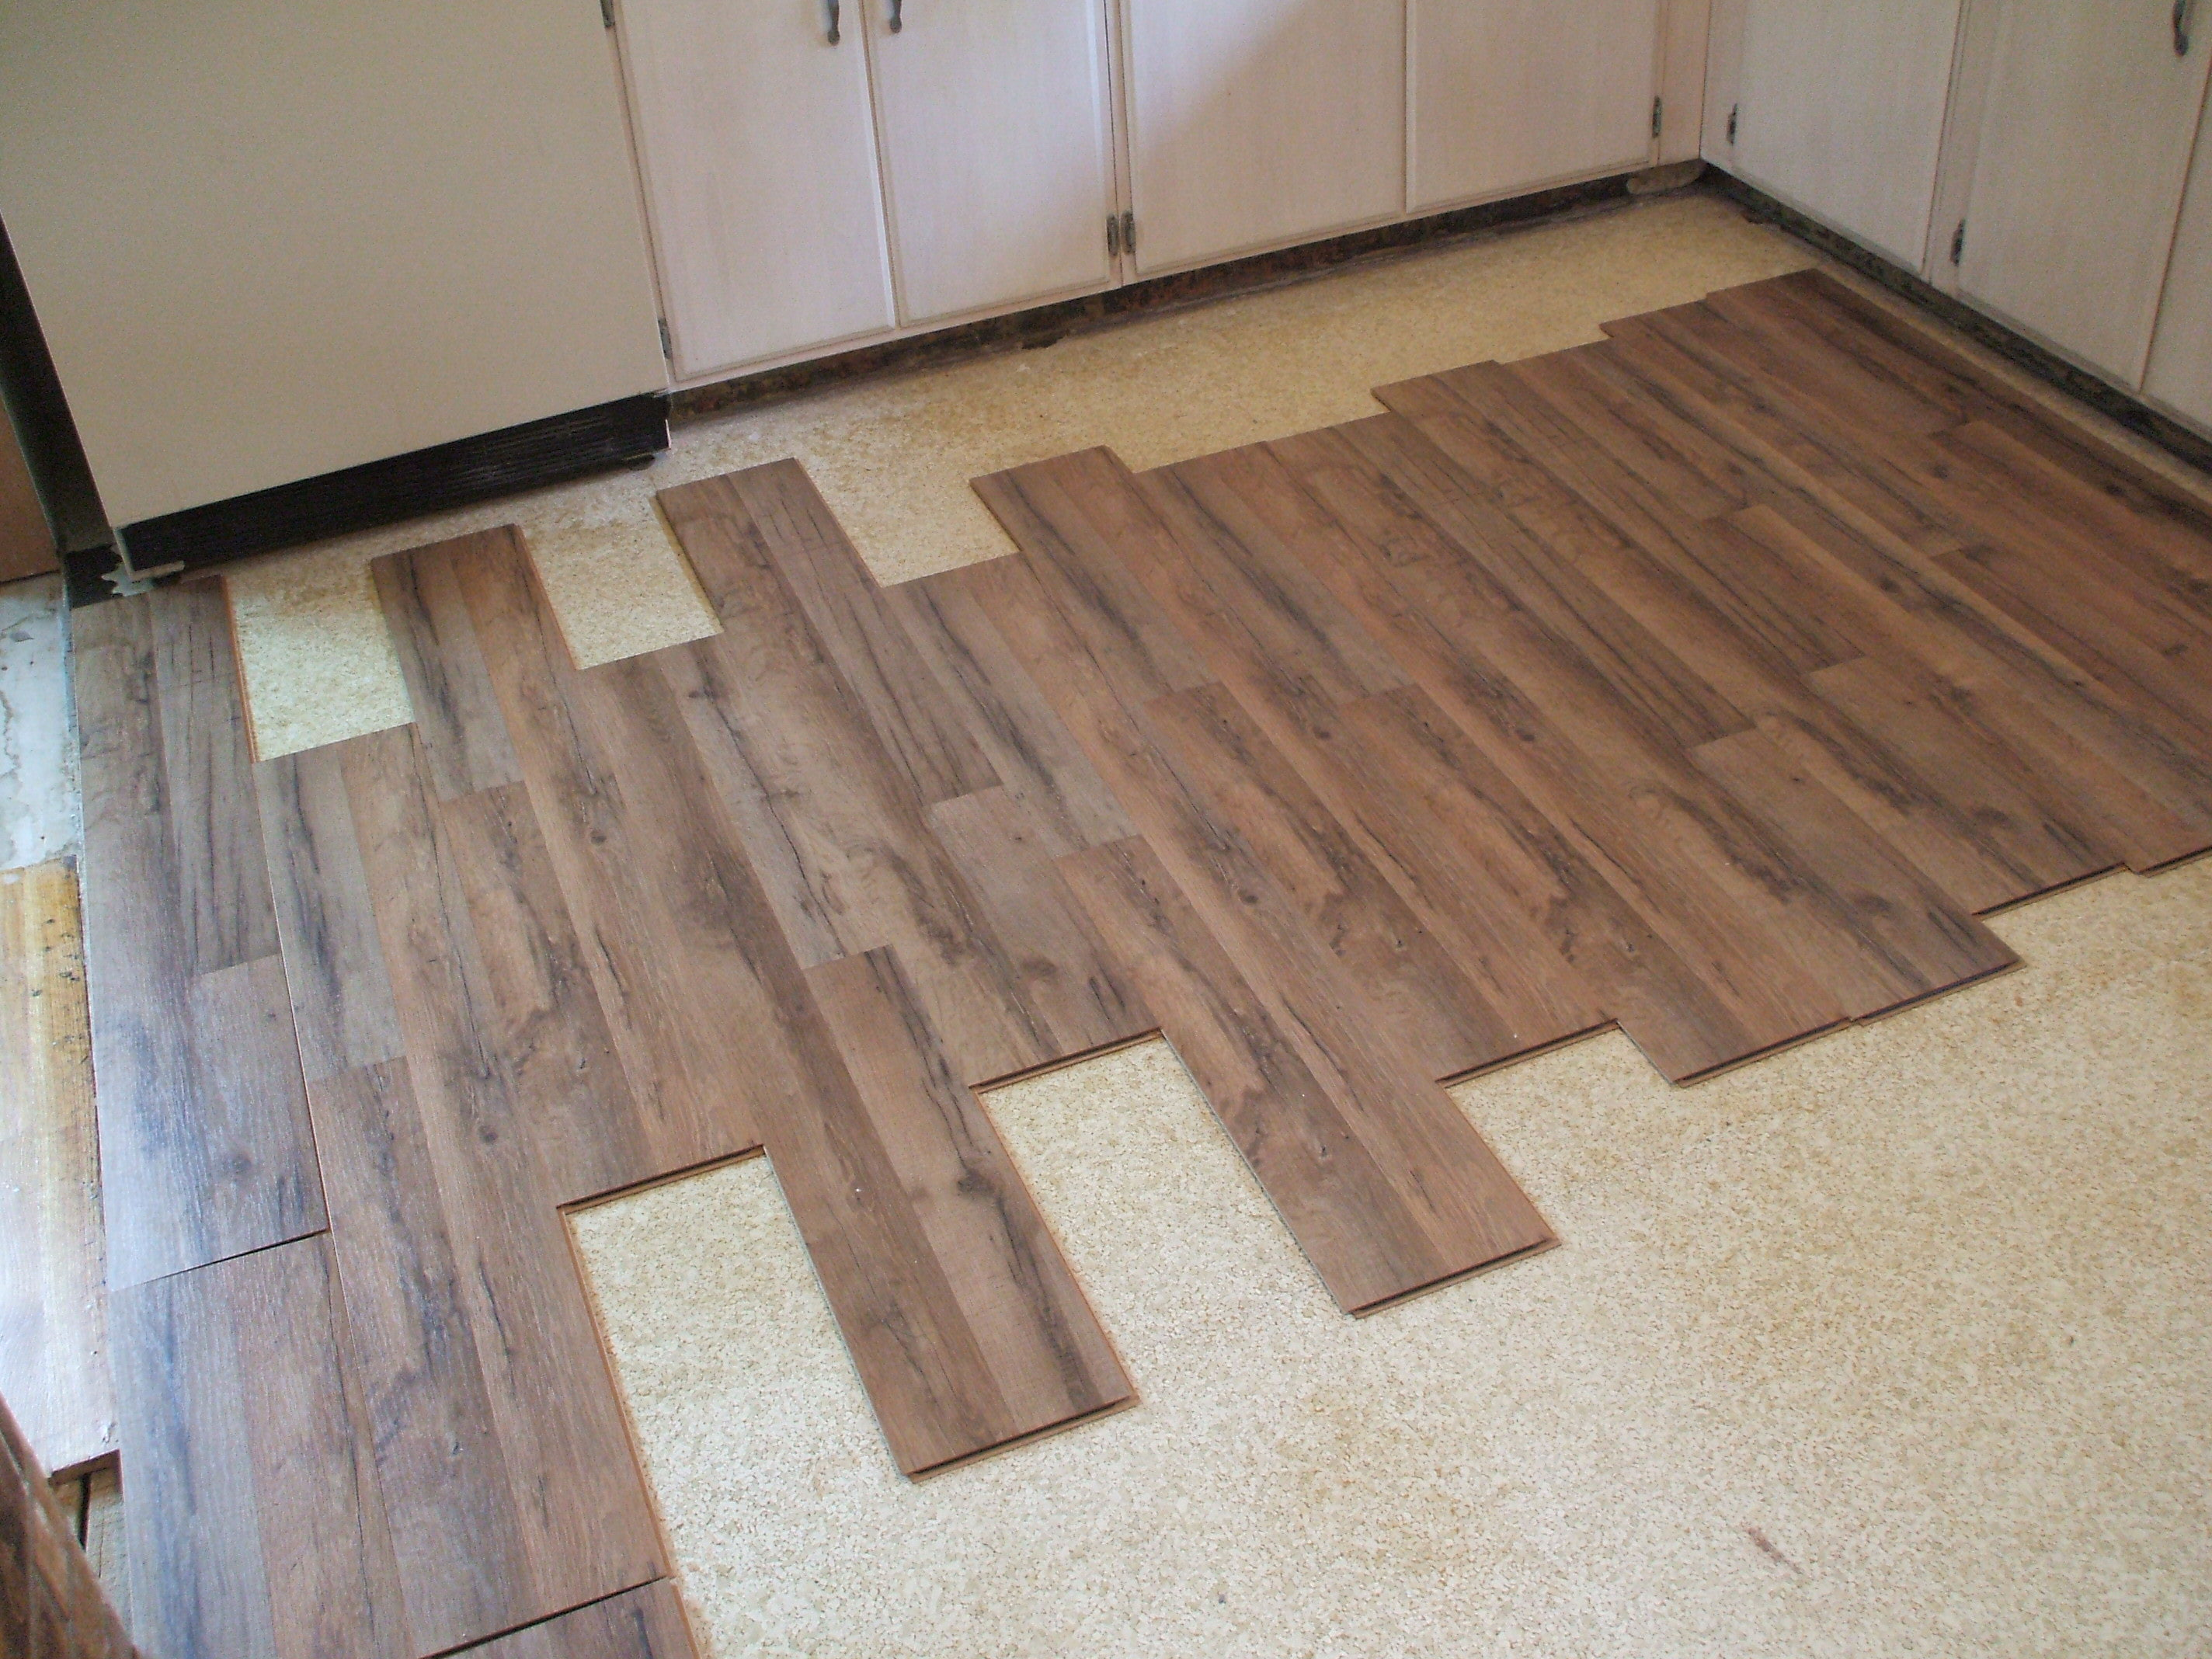 Waterproof Flooring For Kitchens Flooring Options For Your Rental Home Which Is Best